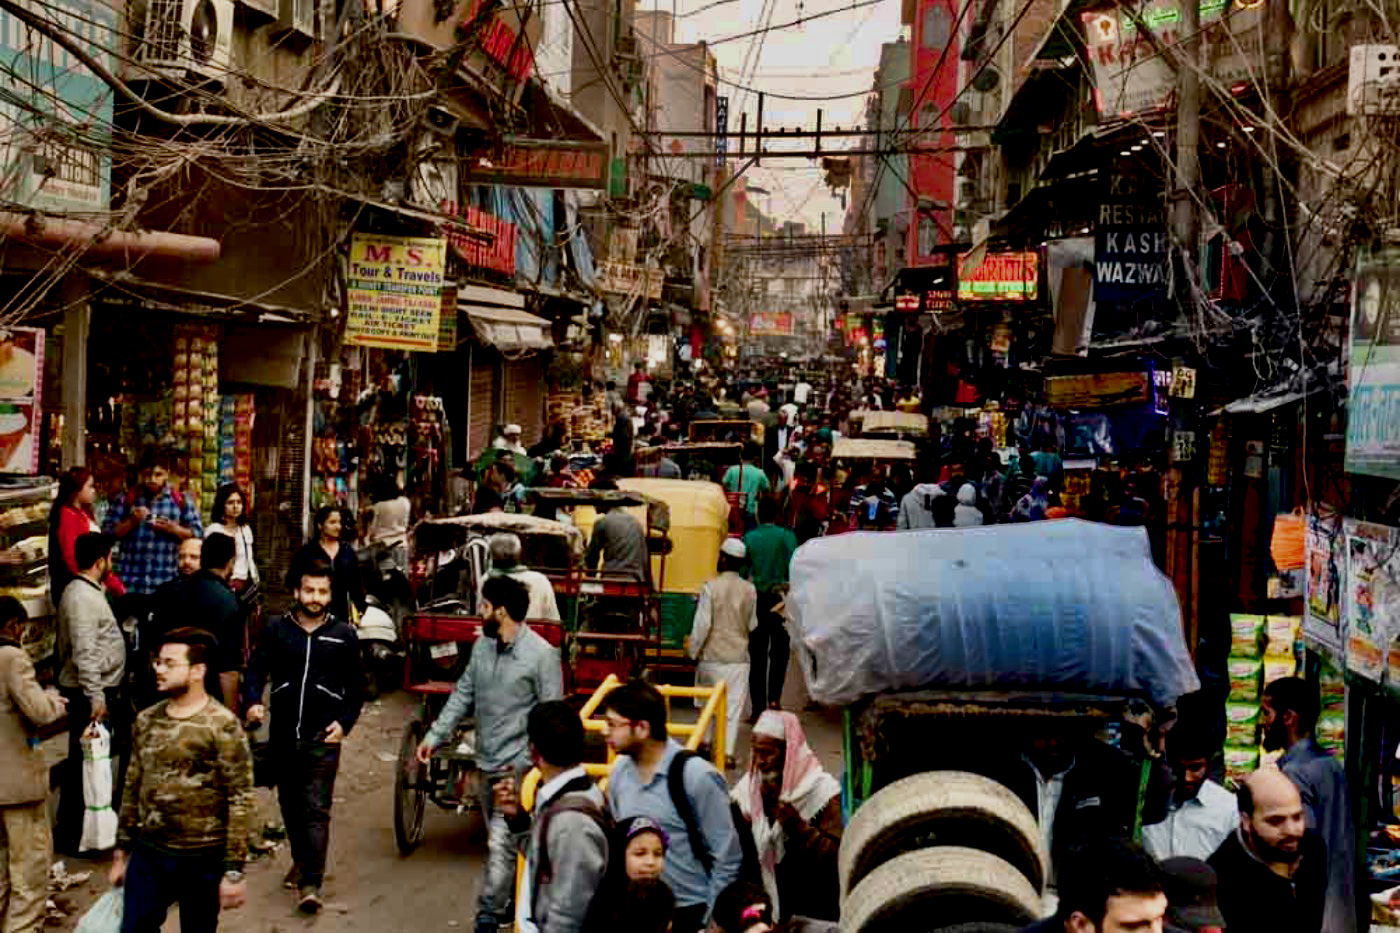 Old Delhi India Chandni Chowk Markets and Streets